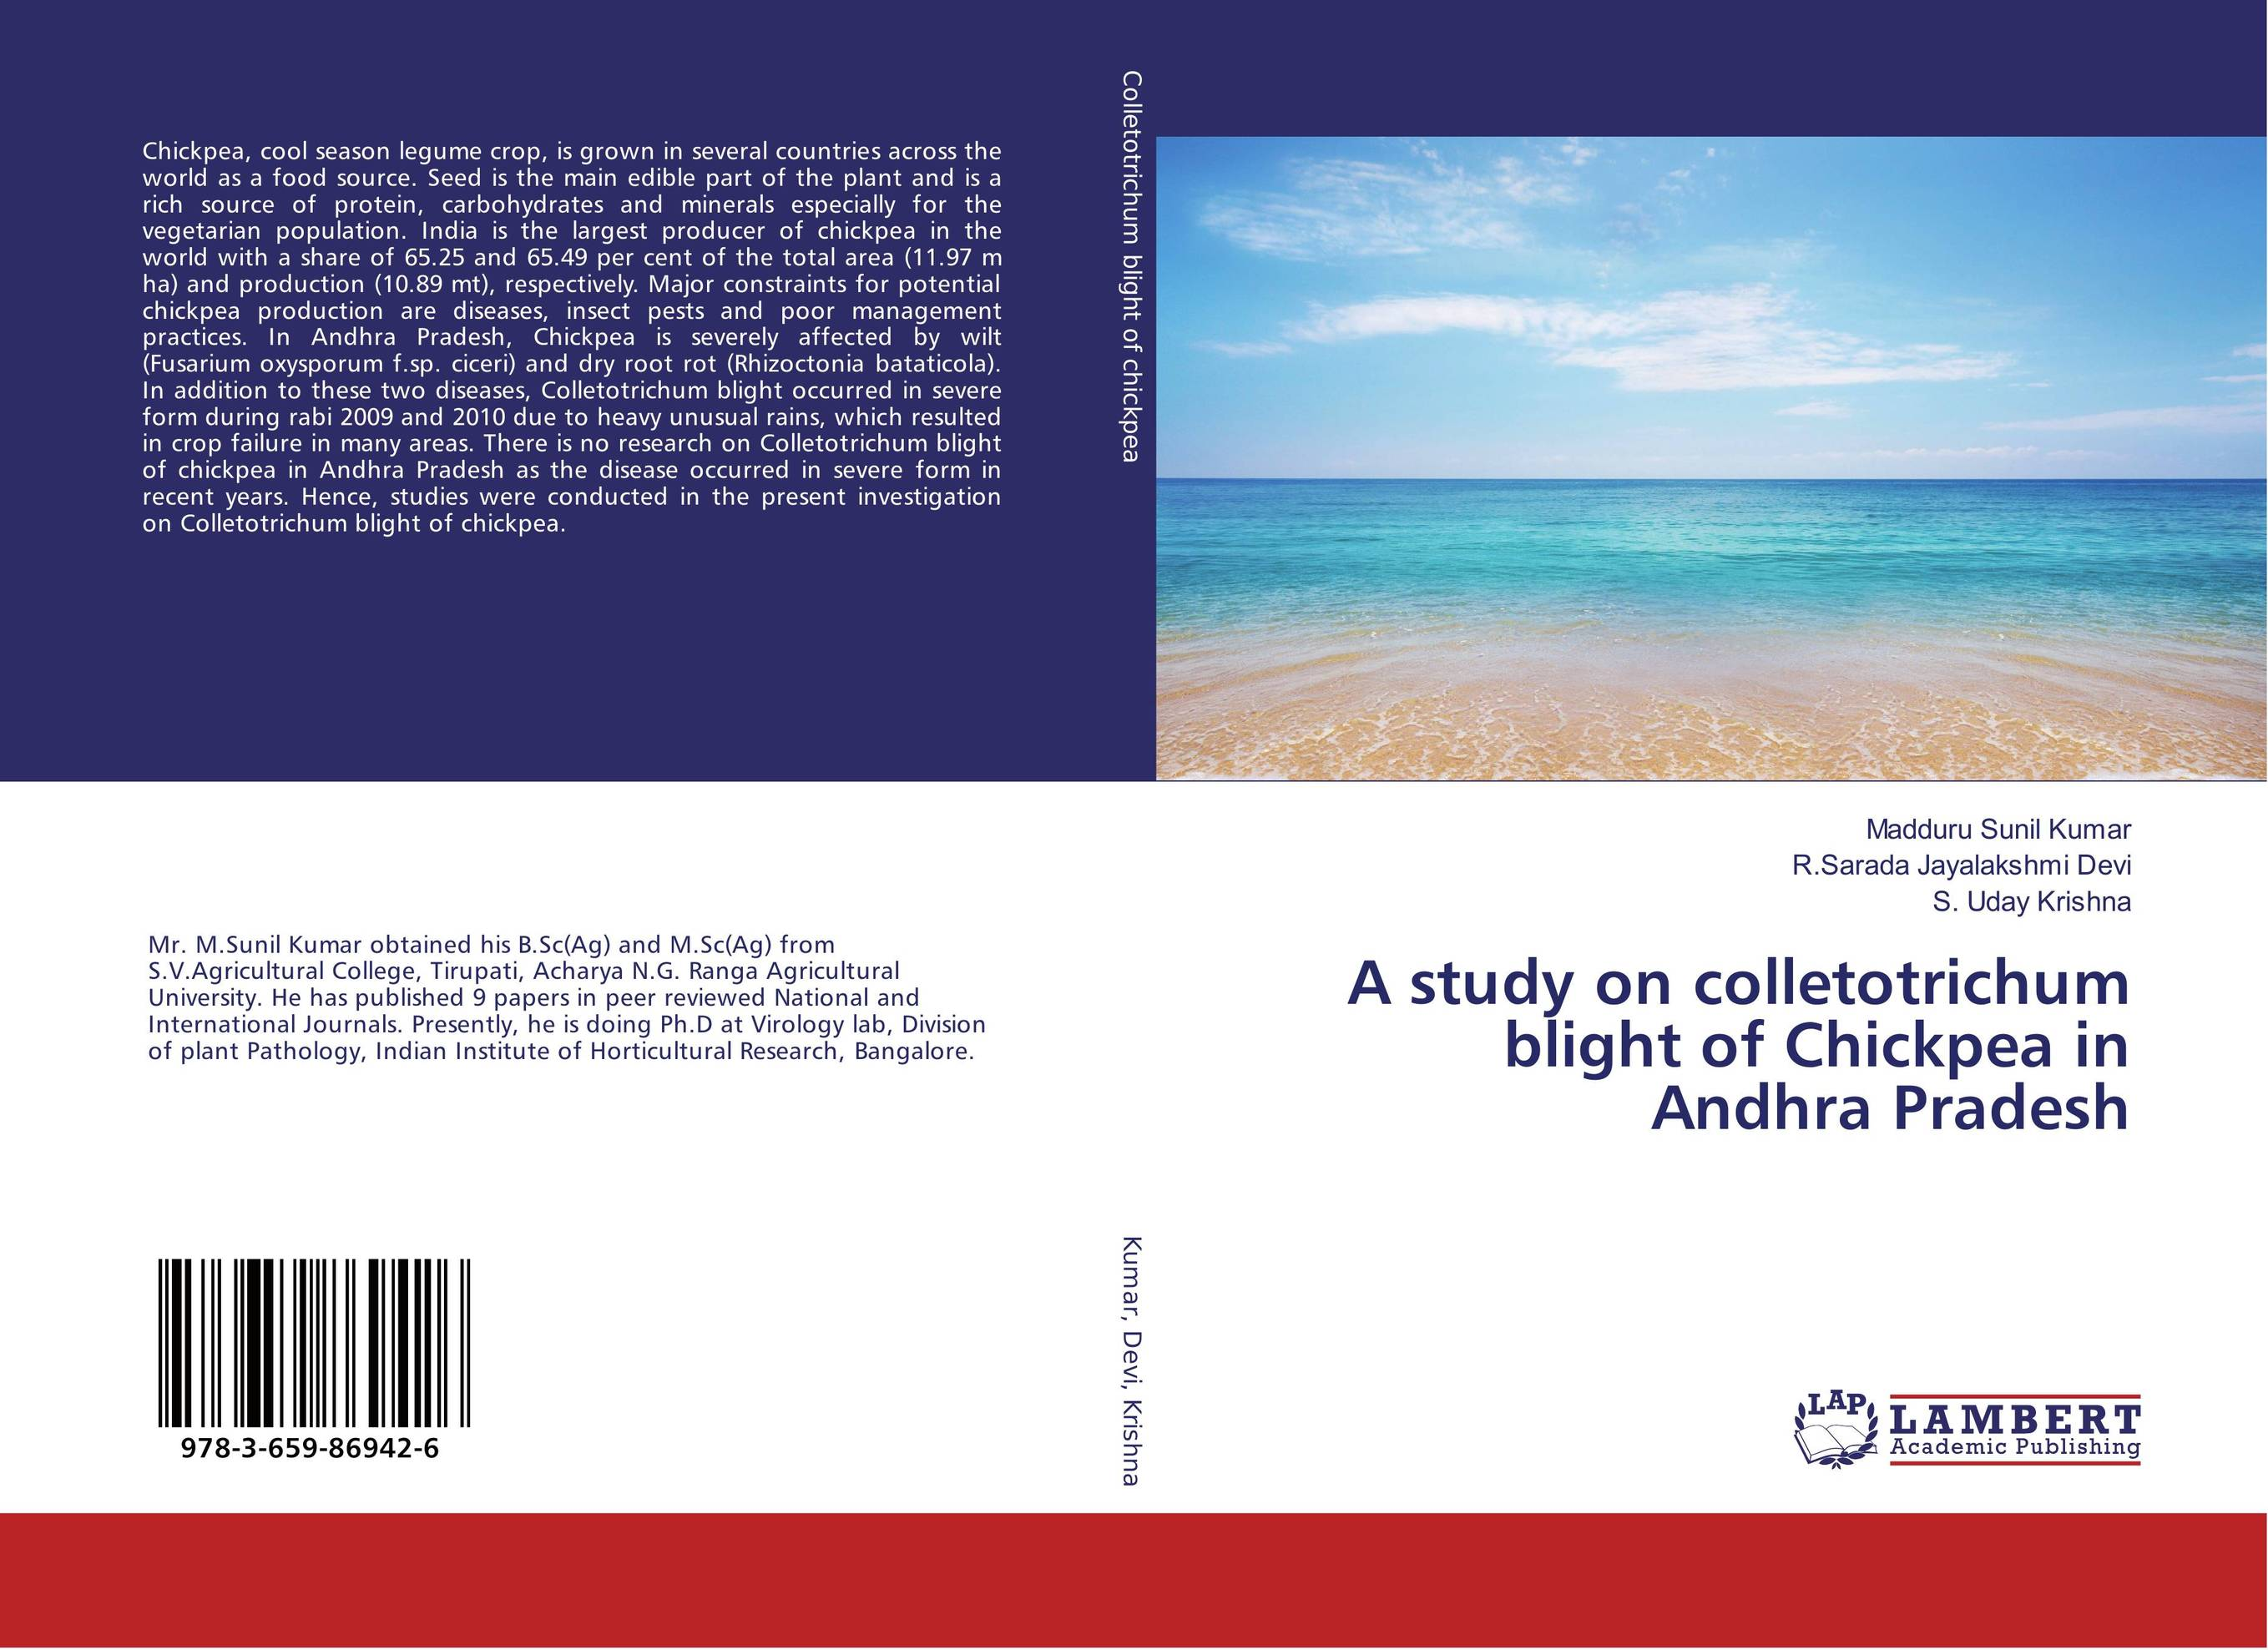 A study on colletotrichum blight of Chickpea in Andhra Pradesh